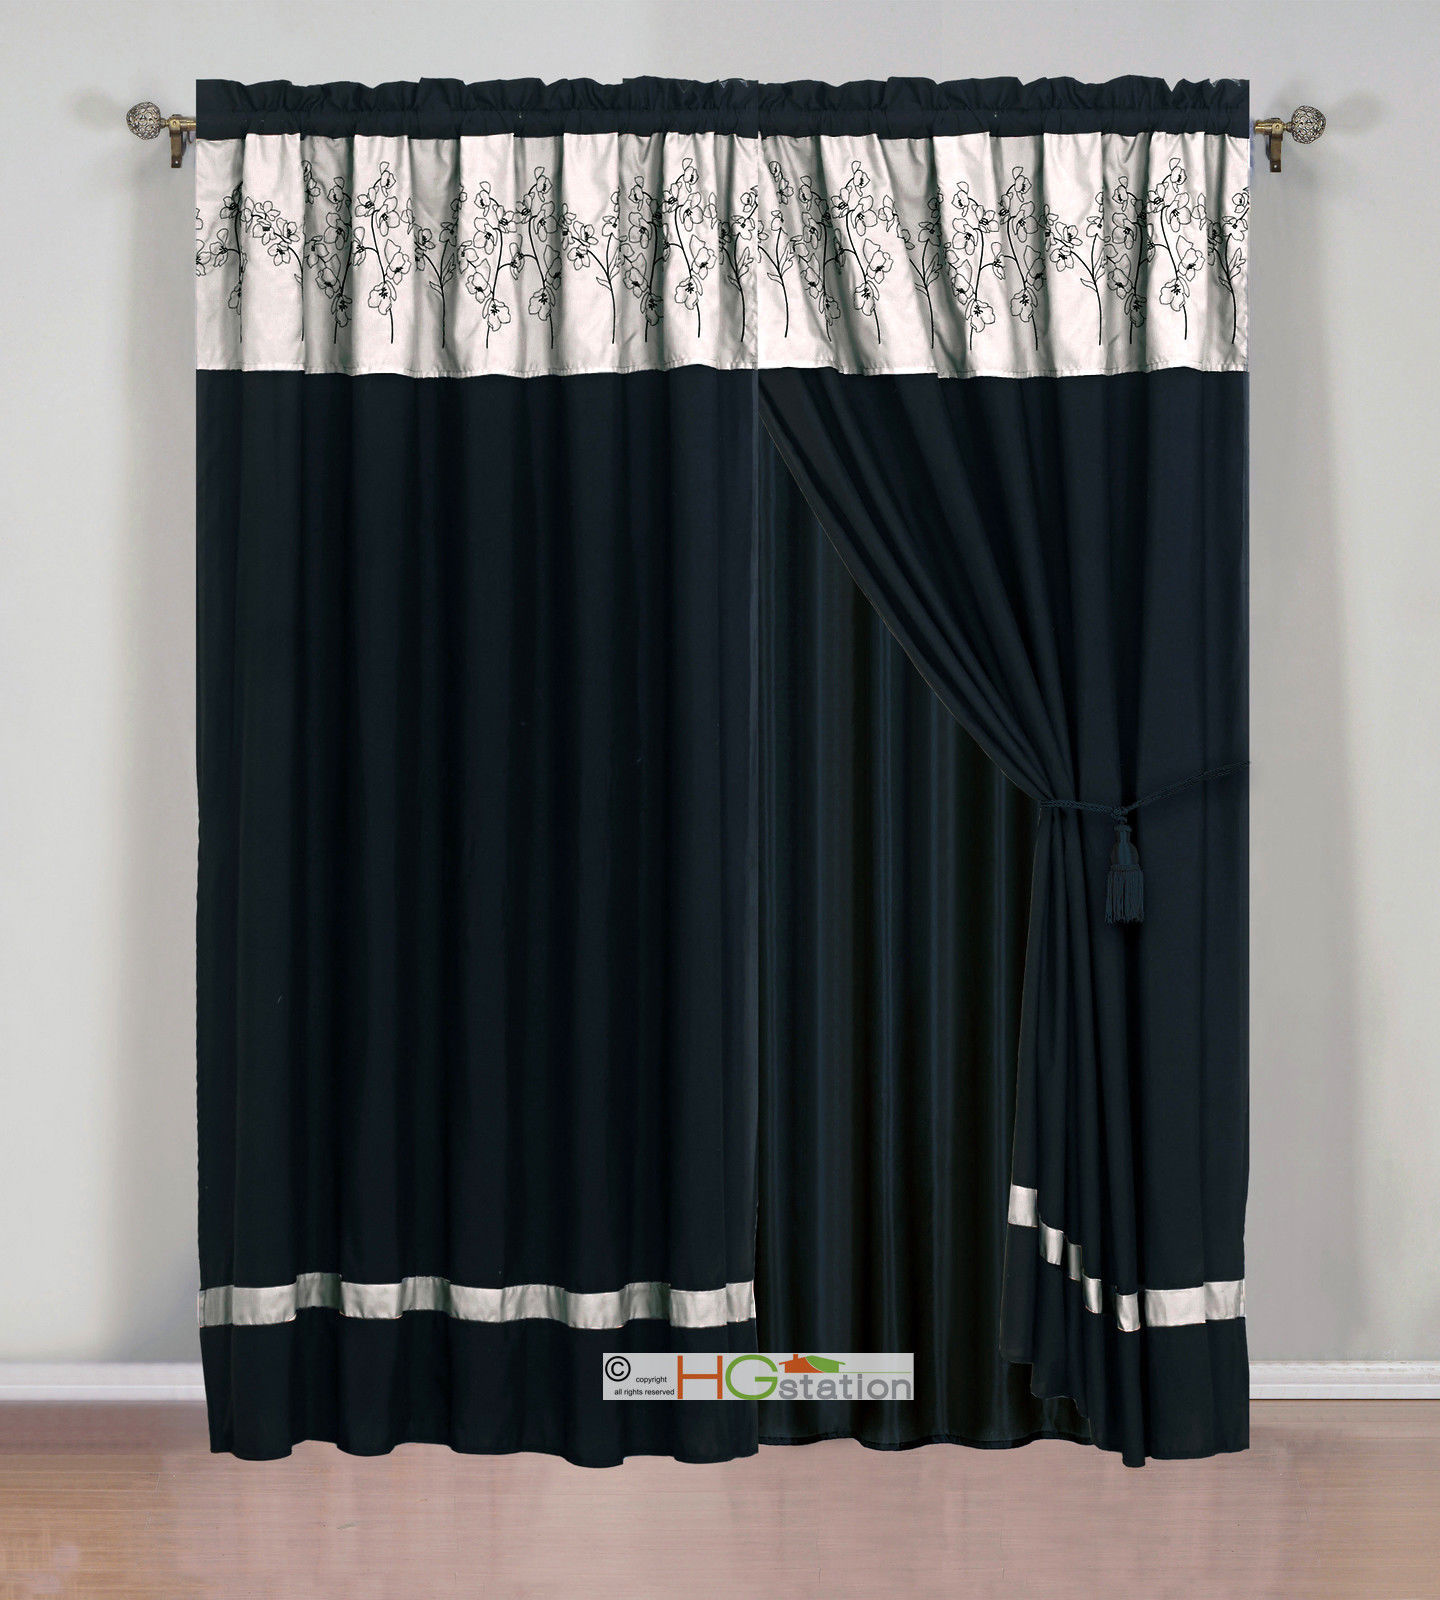 Primary image for 4-Pc Flower Floral Bloom Curtain Set Dark Beige Khaki Black Valance Drape Liner